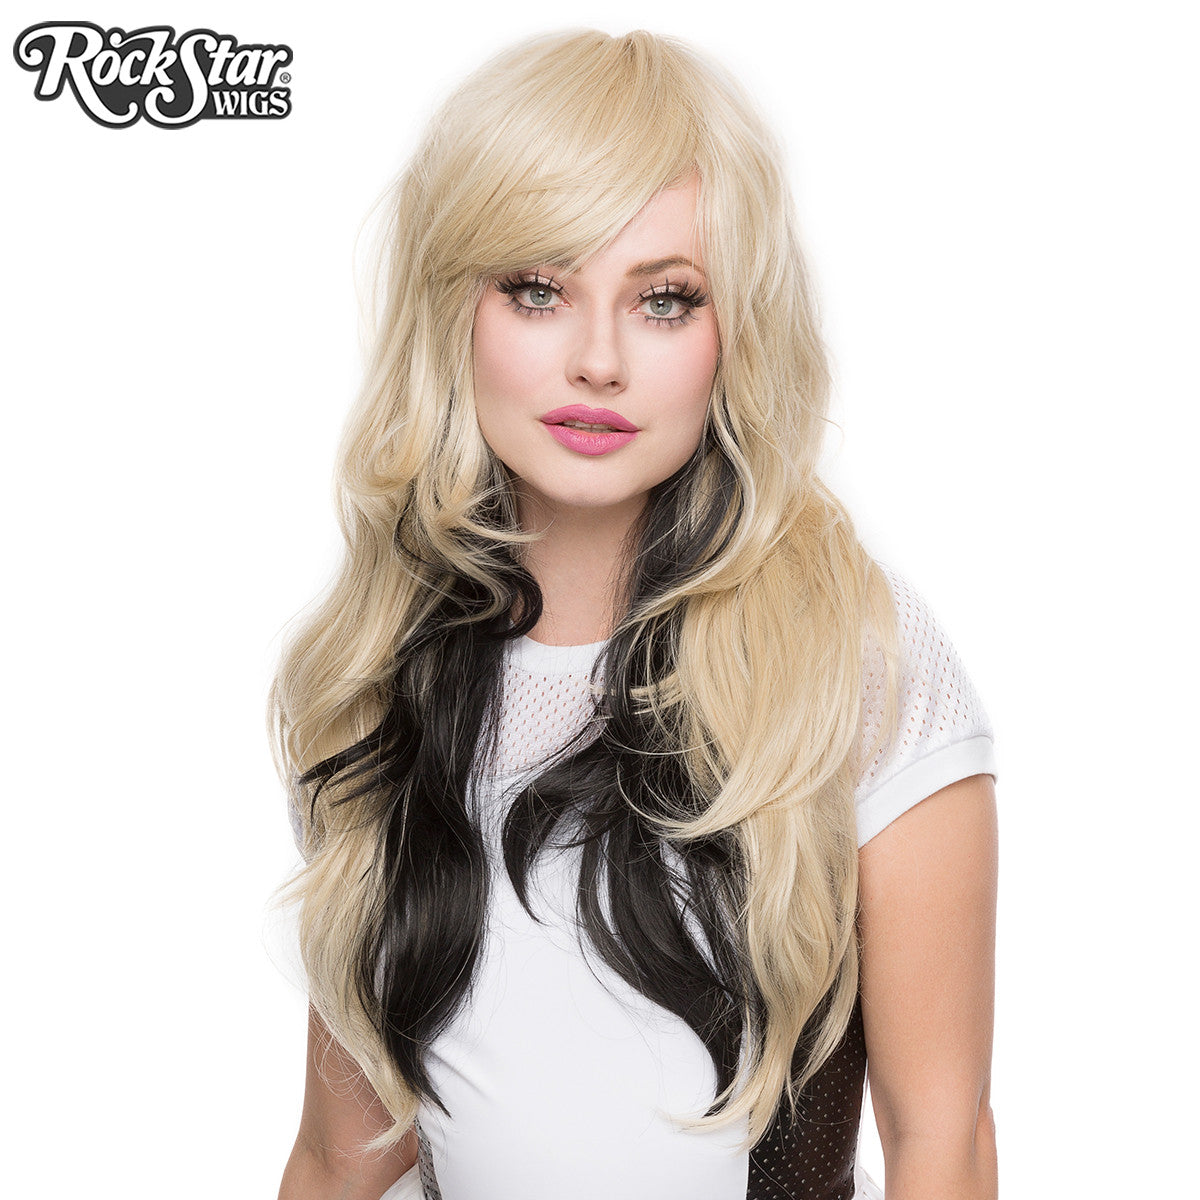 RockStar Wigs® <br> Downtown Girl™ Collection - Blonde & Black- 00364